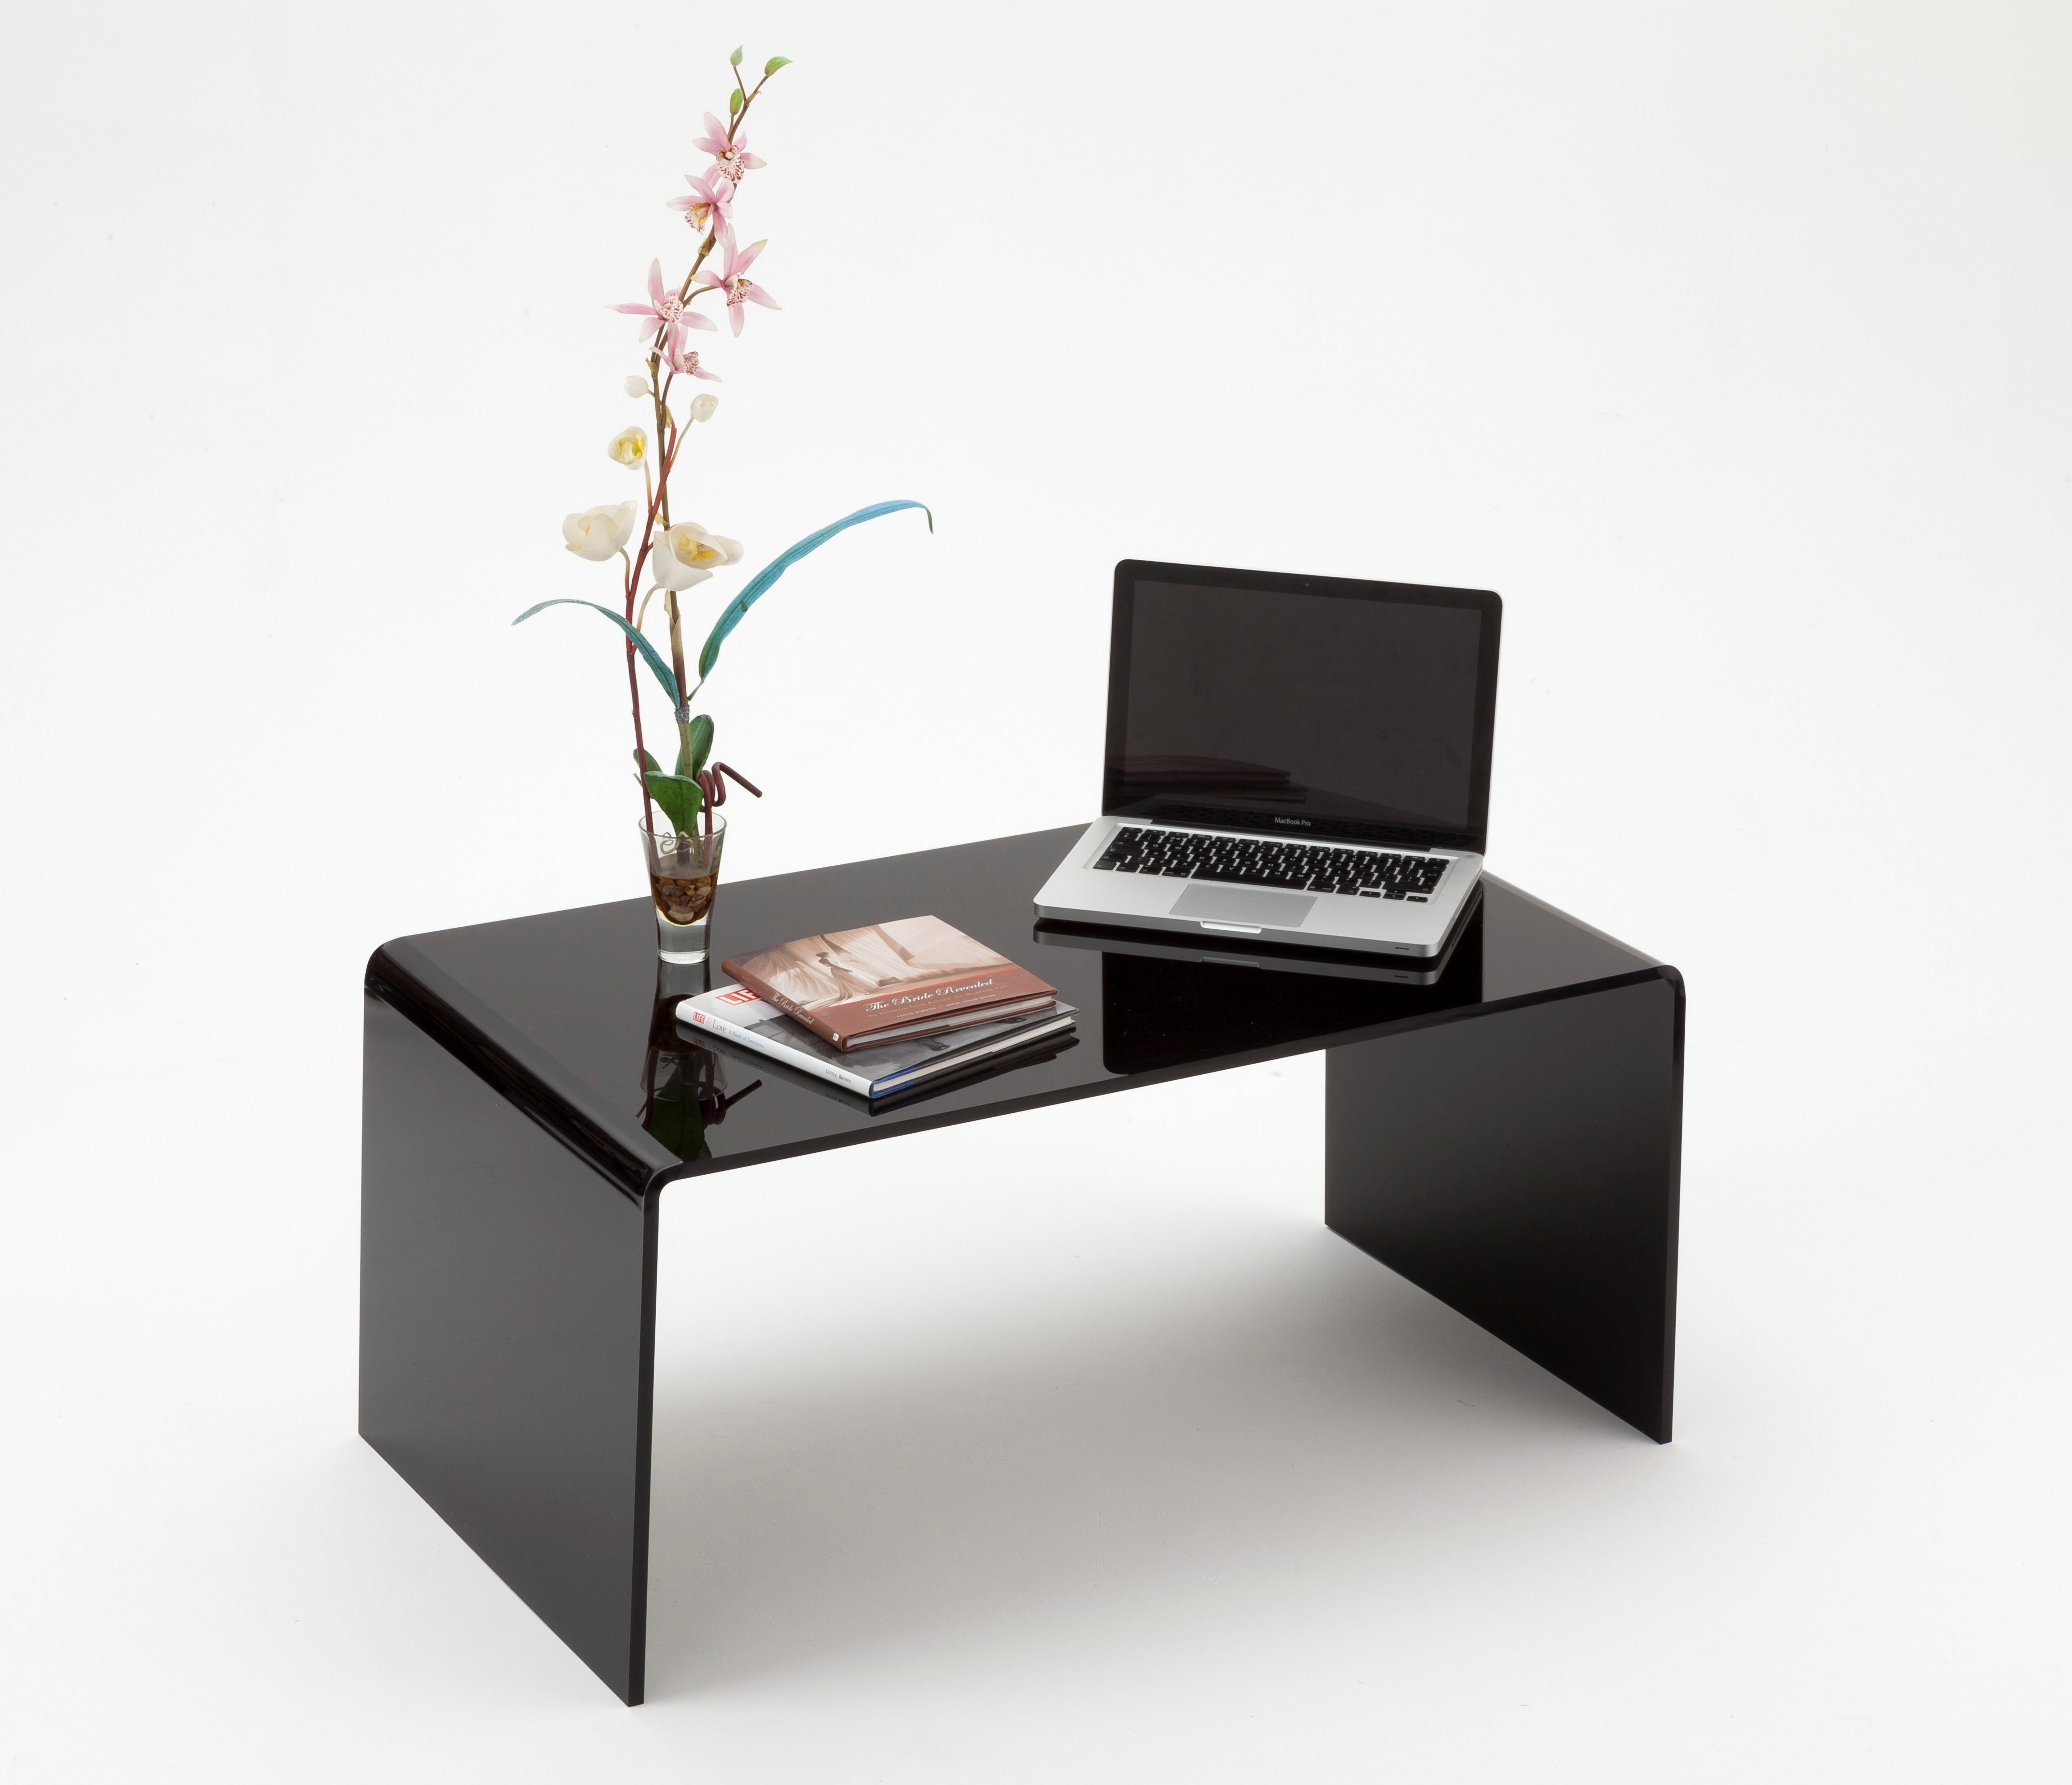 Acrylic Coffee Tables | Latest Designs | Free Delivery with regard to Peekaboo Acrylic Coffee Tables (Image 8 of 30)